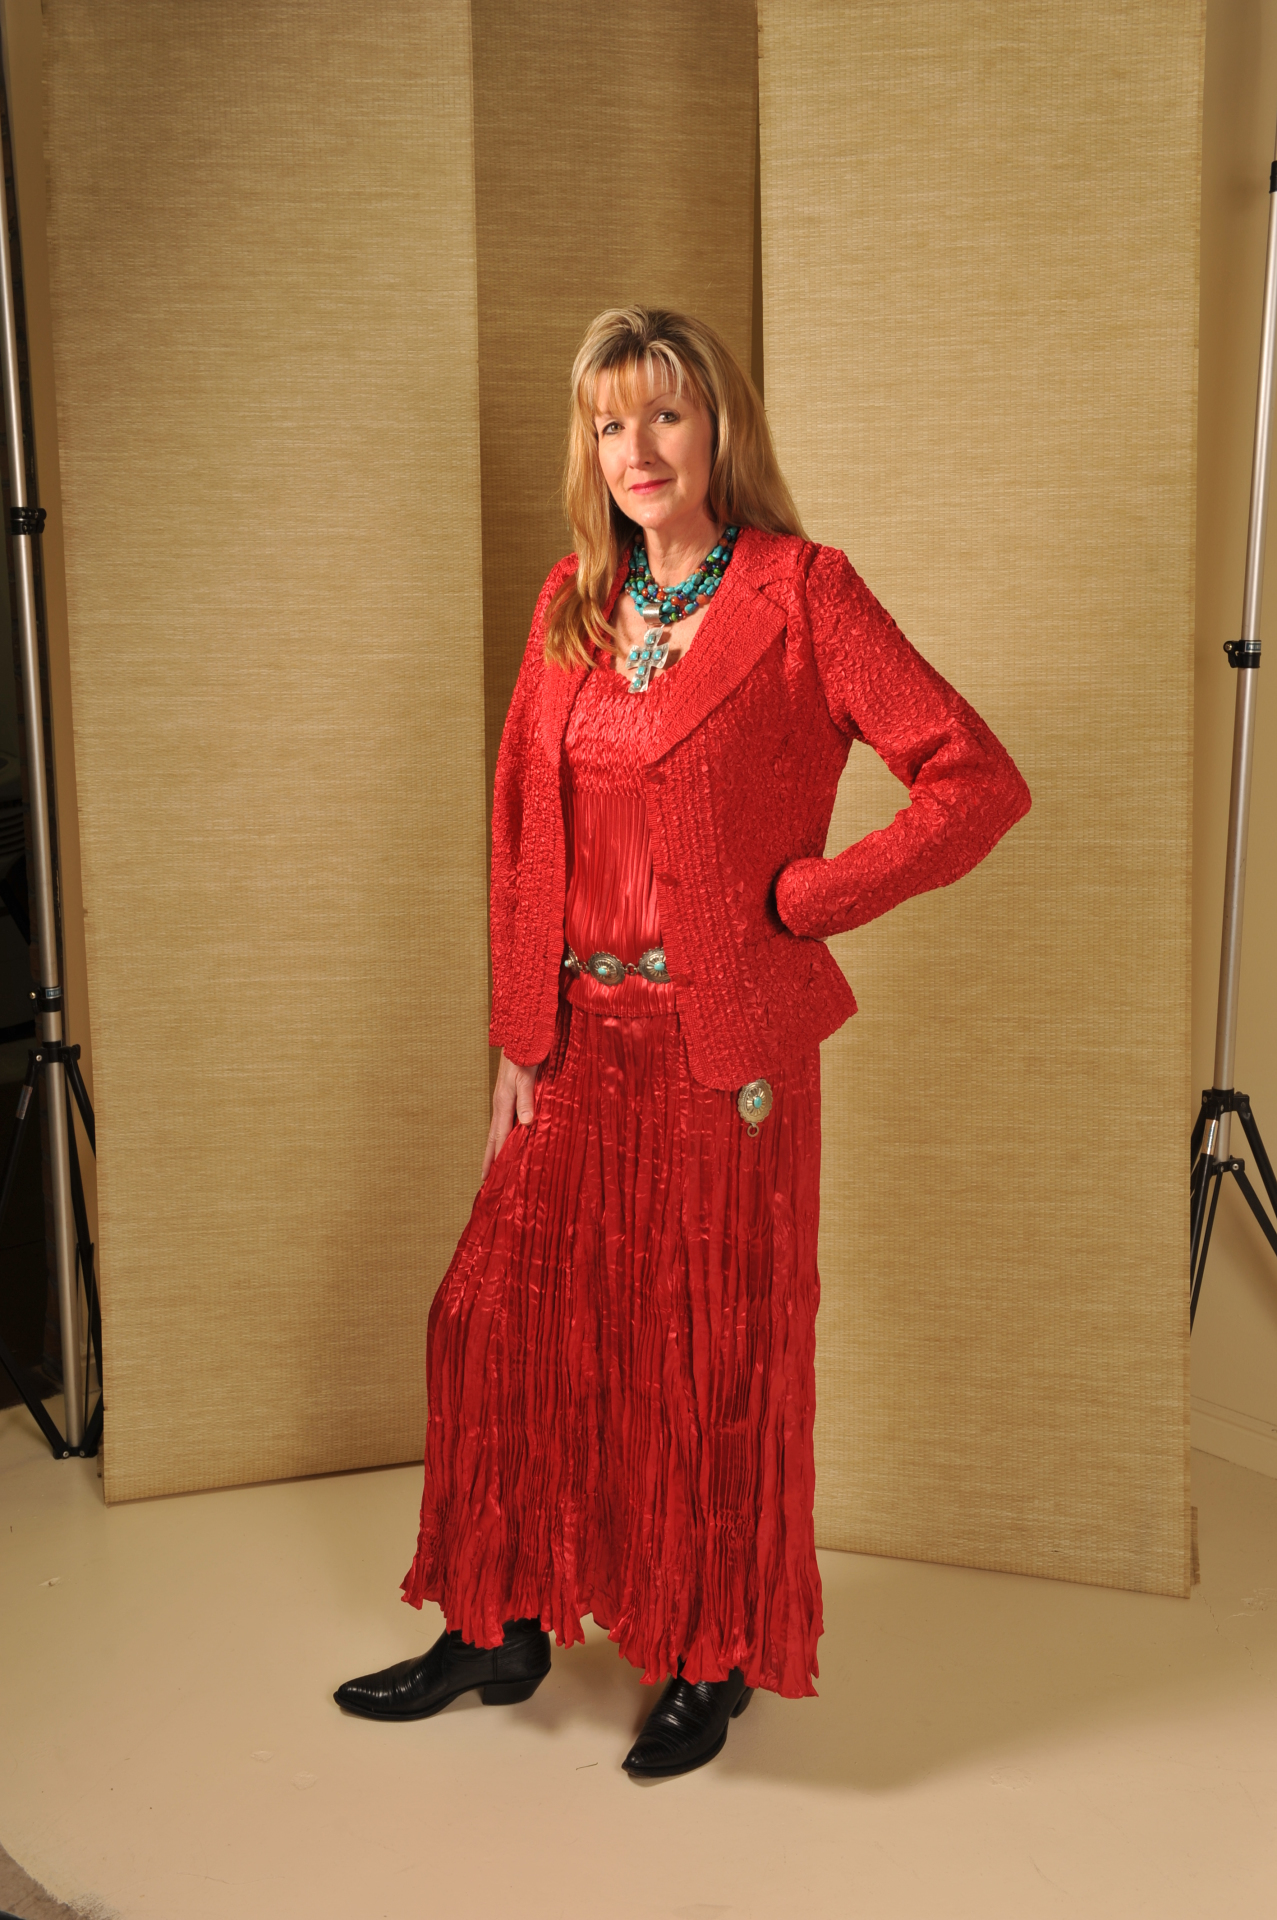 672RD - RED SATIN TWIN SET & SKIRT                                   #672 WAS $109.95 - SALE $29.95